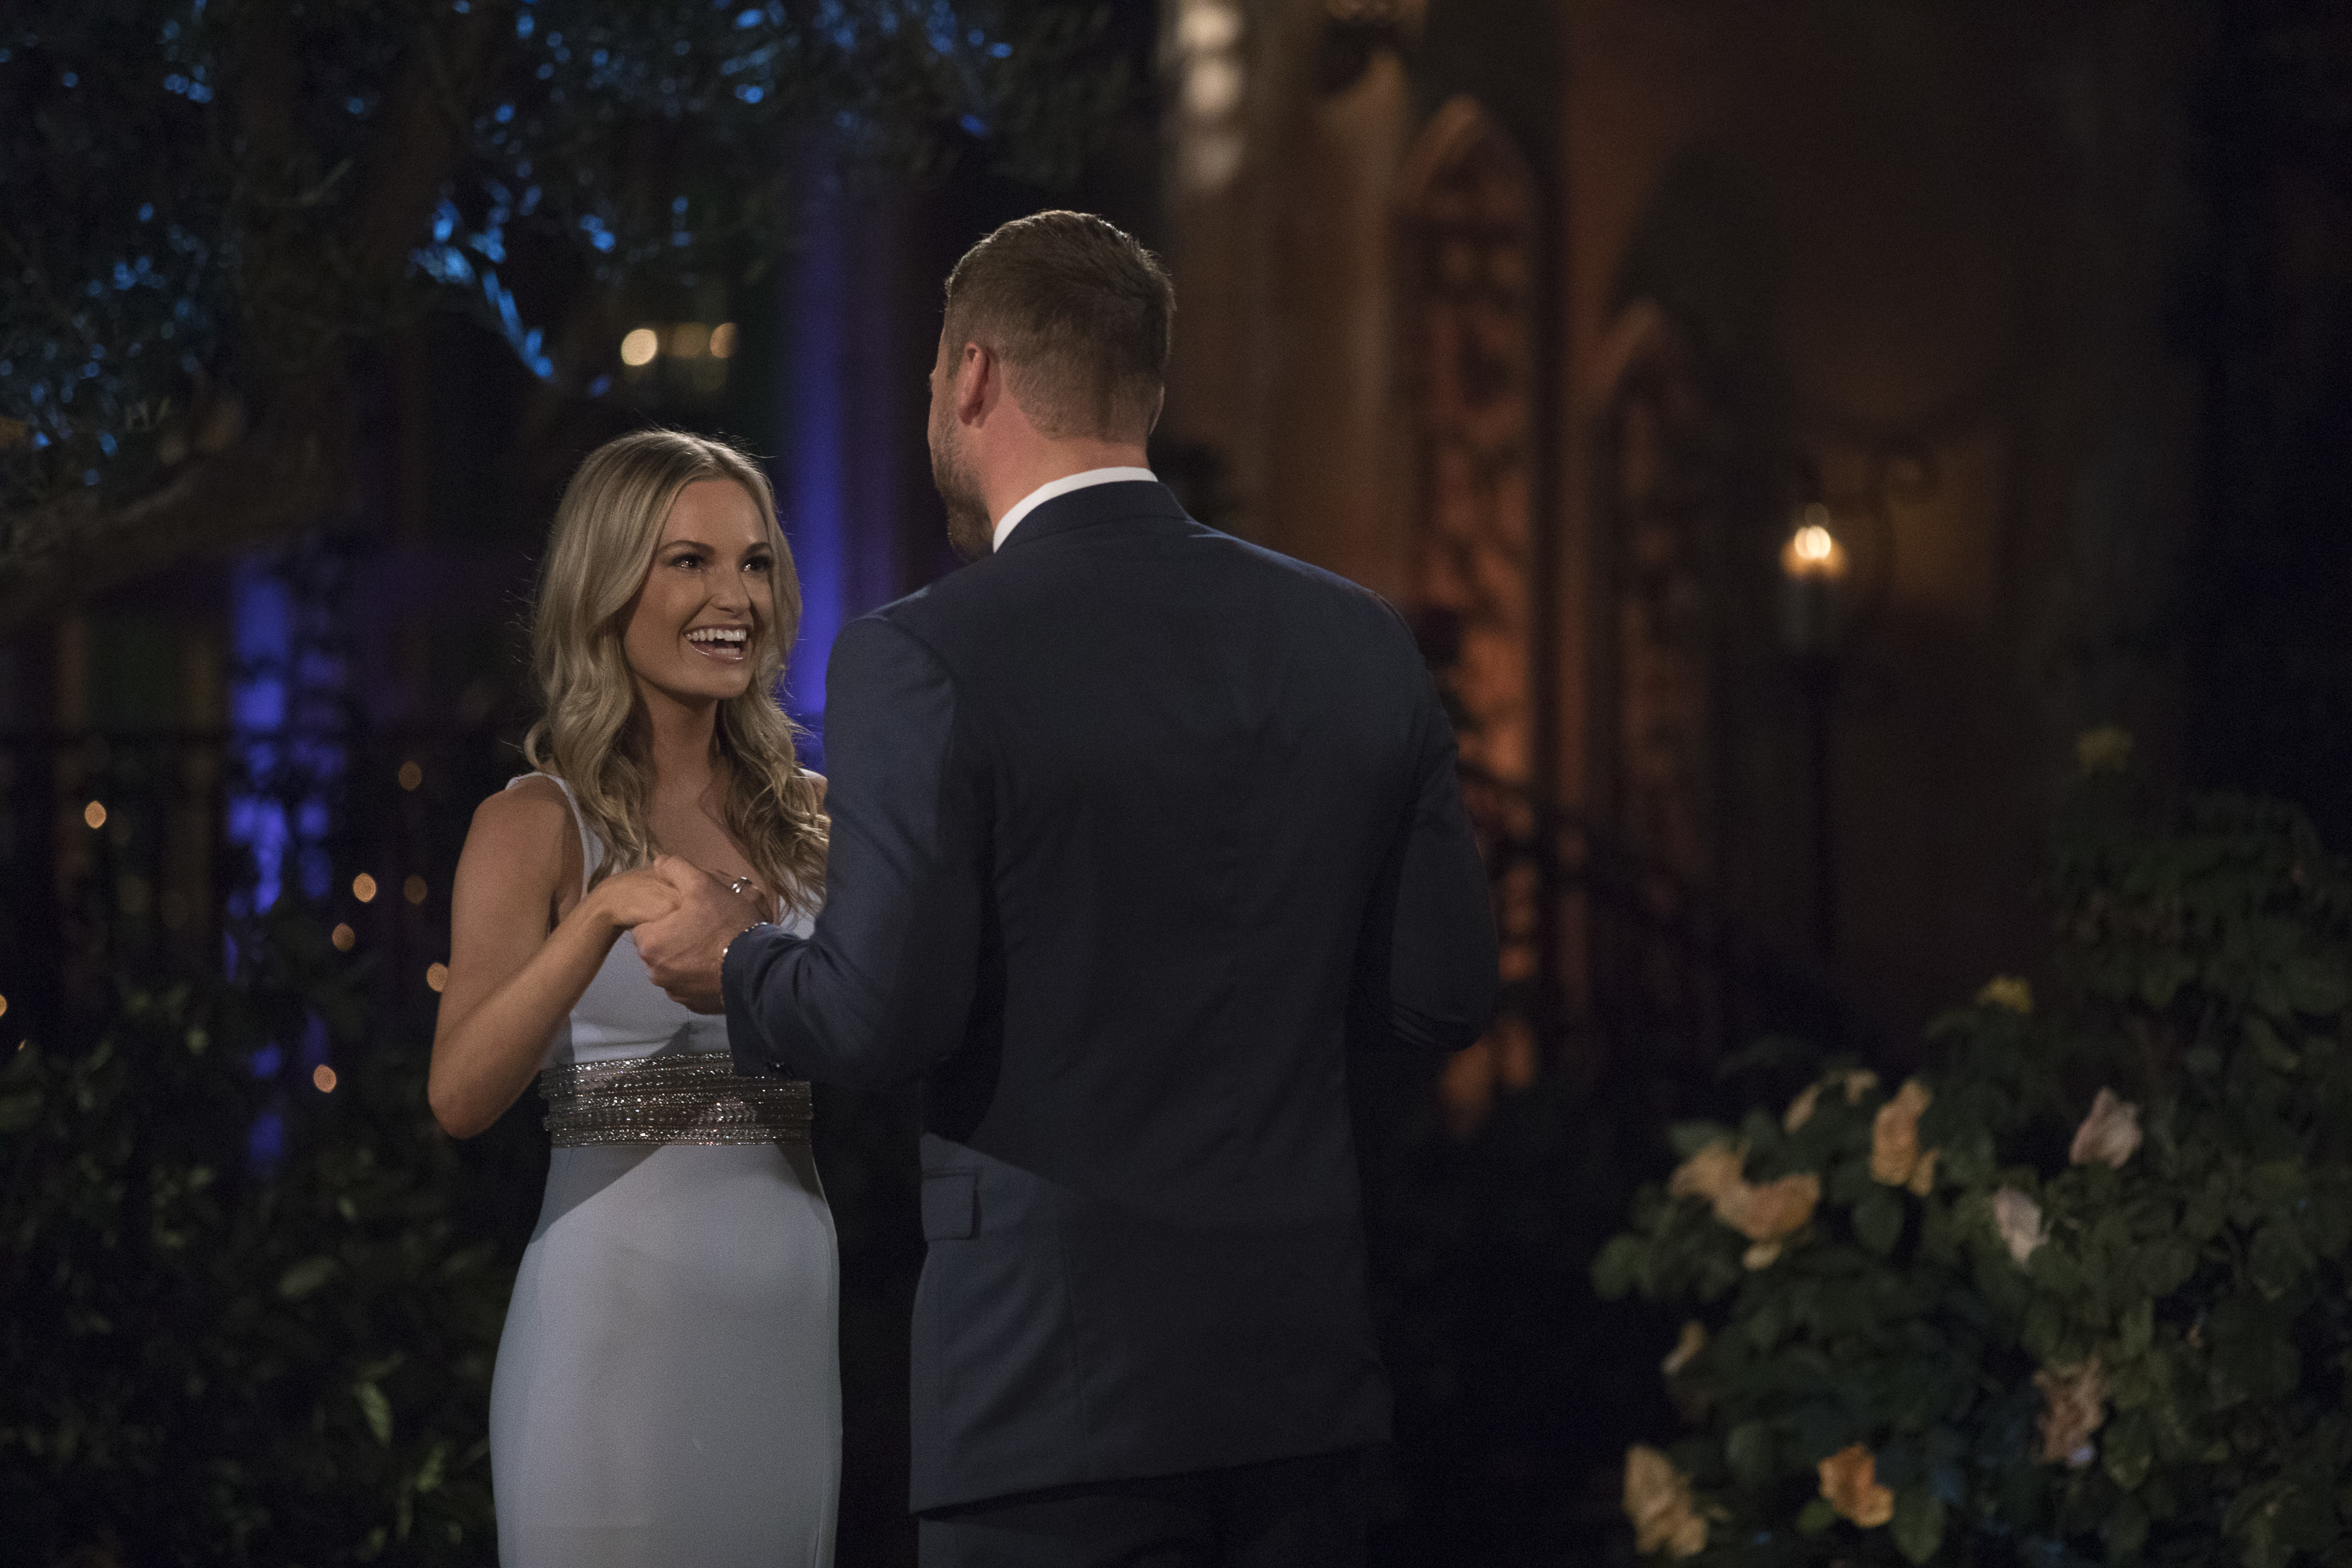 Bachelor 23 - Annie Reardon - Discussion - *Sleuthing Spoilers*  - Page 3 150365_0758